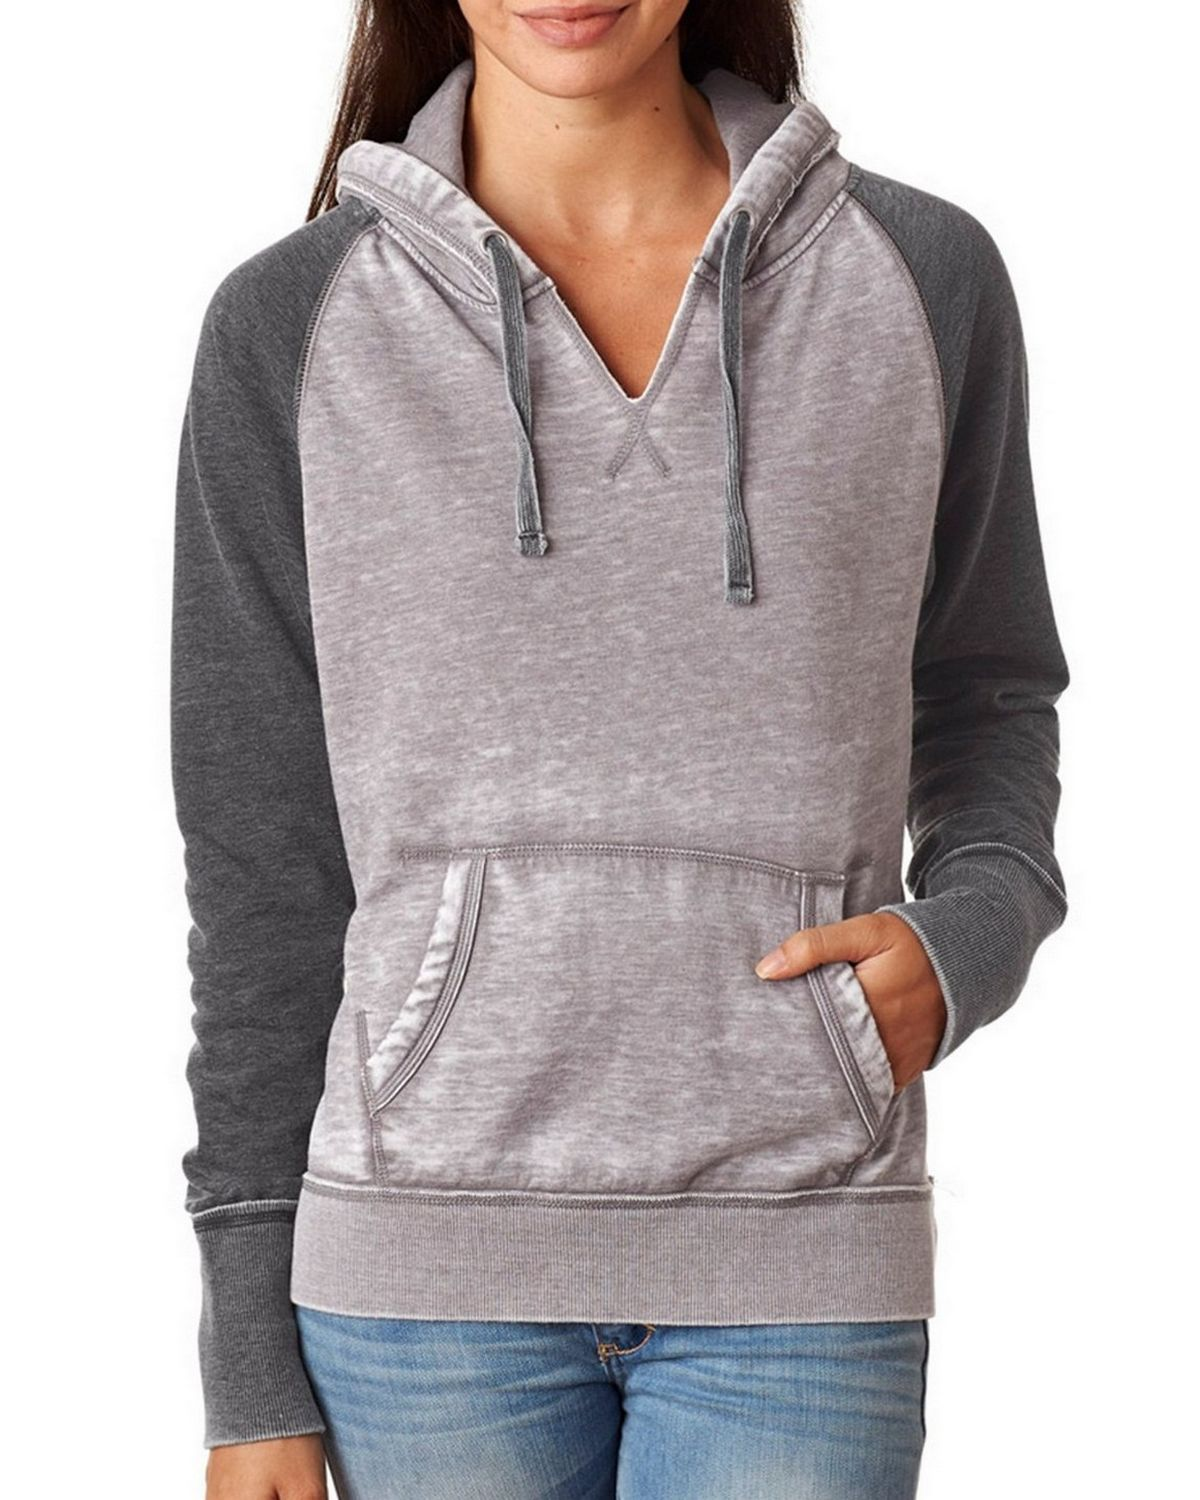 J America J8926 Ladies Zen Contrast Pullover - Cement/Wildberry - M J8926